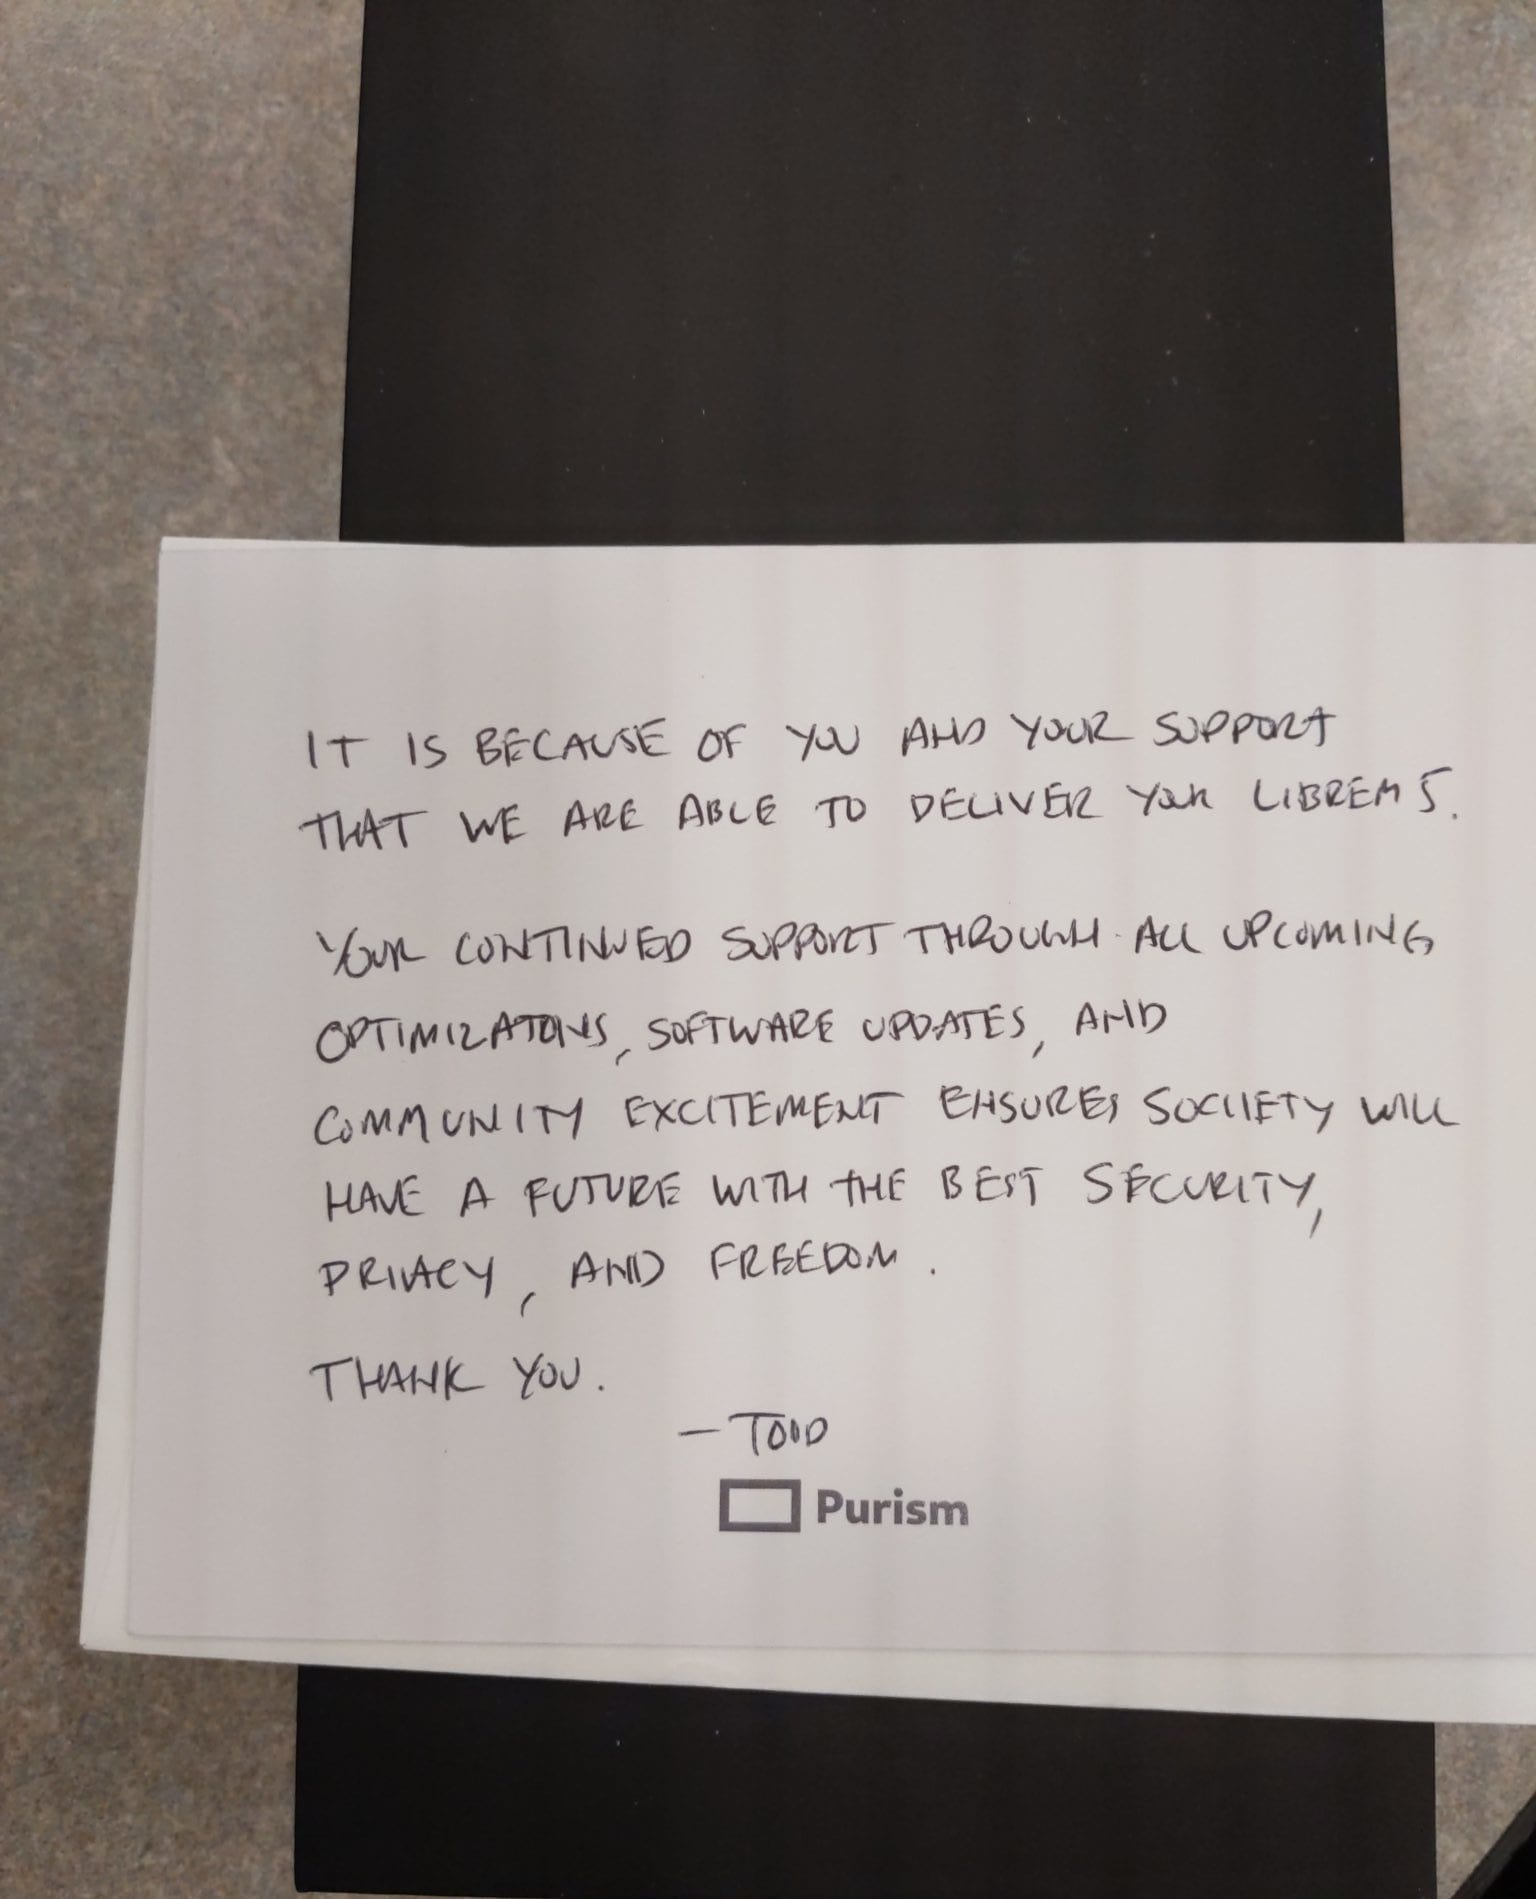 Purism adds a touch of class to their phones, including a handwritten thank you note.